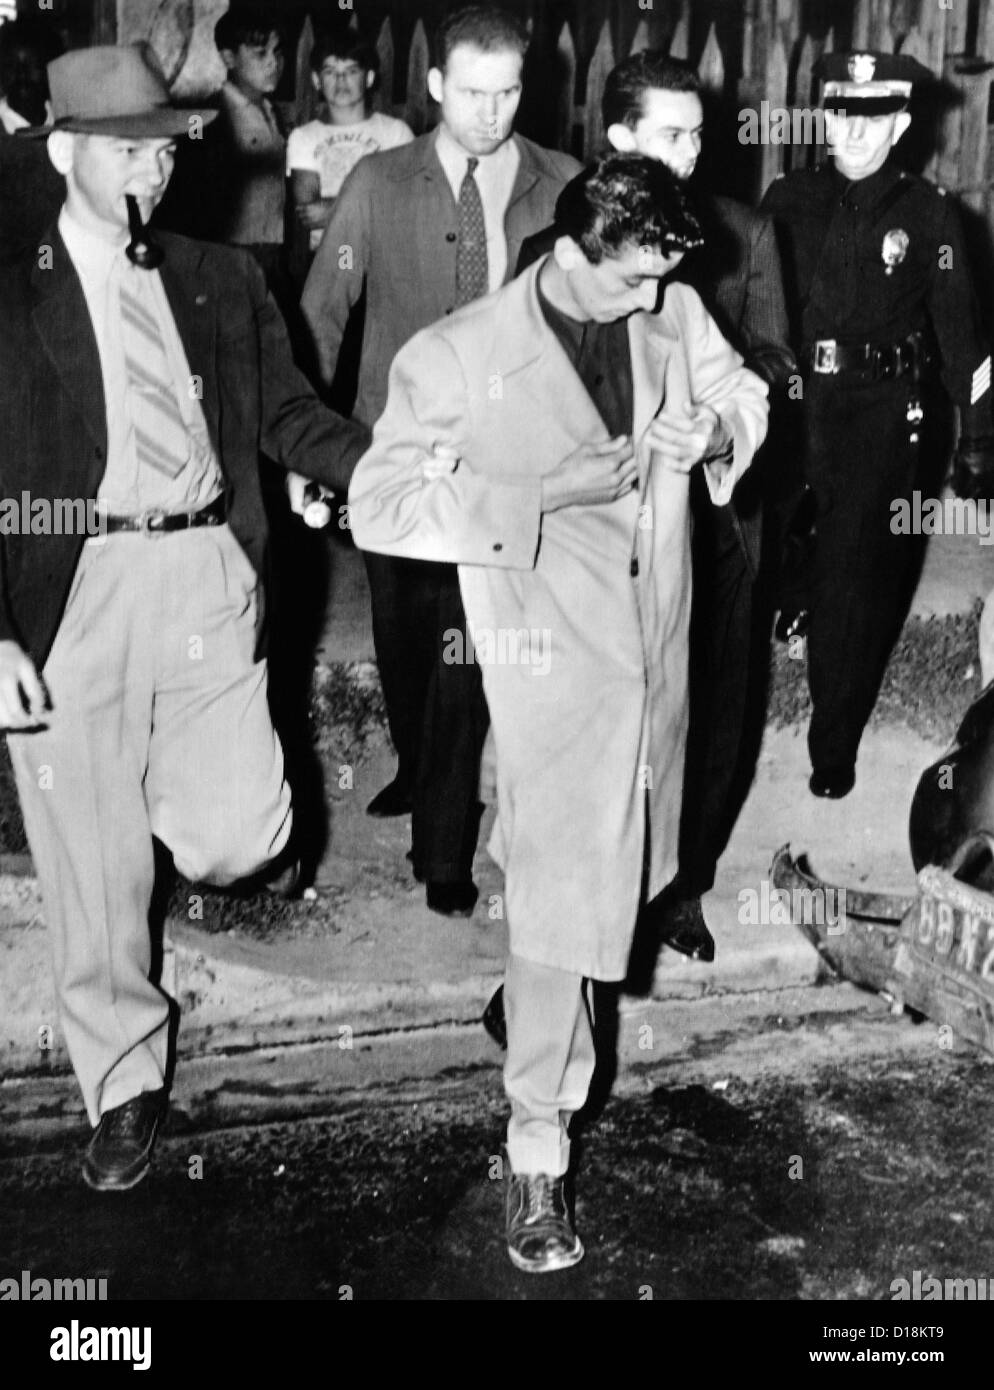 Los Angeles police take a Zoot Suiter into custody. Man wearing a super-knee length zoot suit with stuff cuffs on - Stock Image